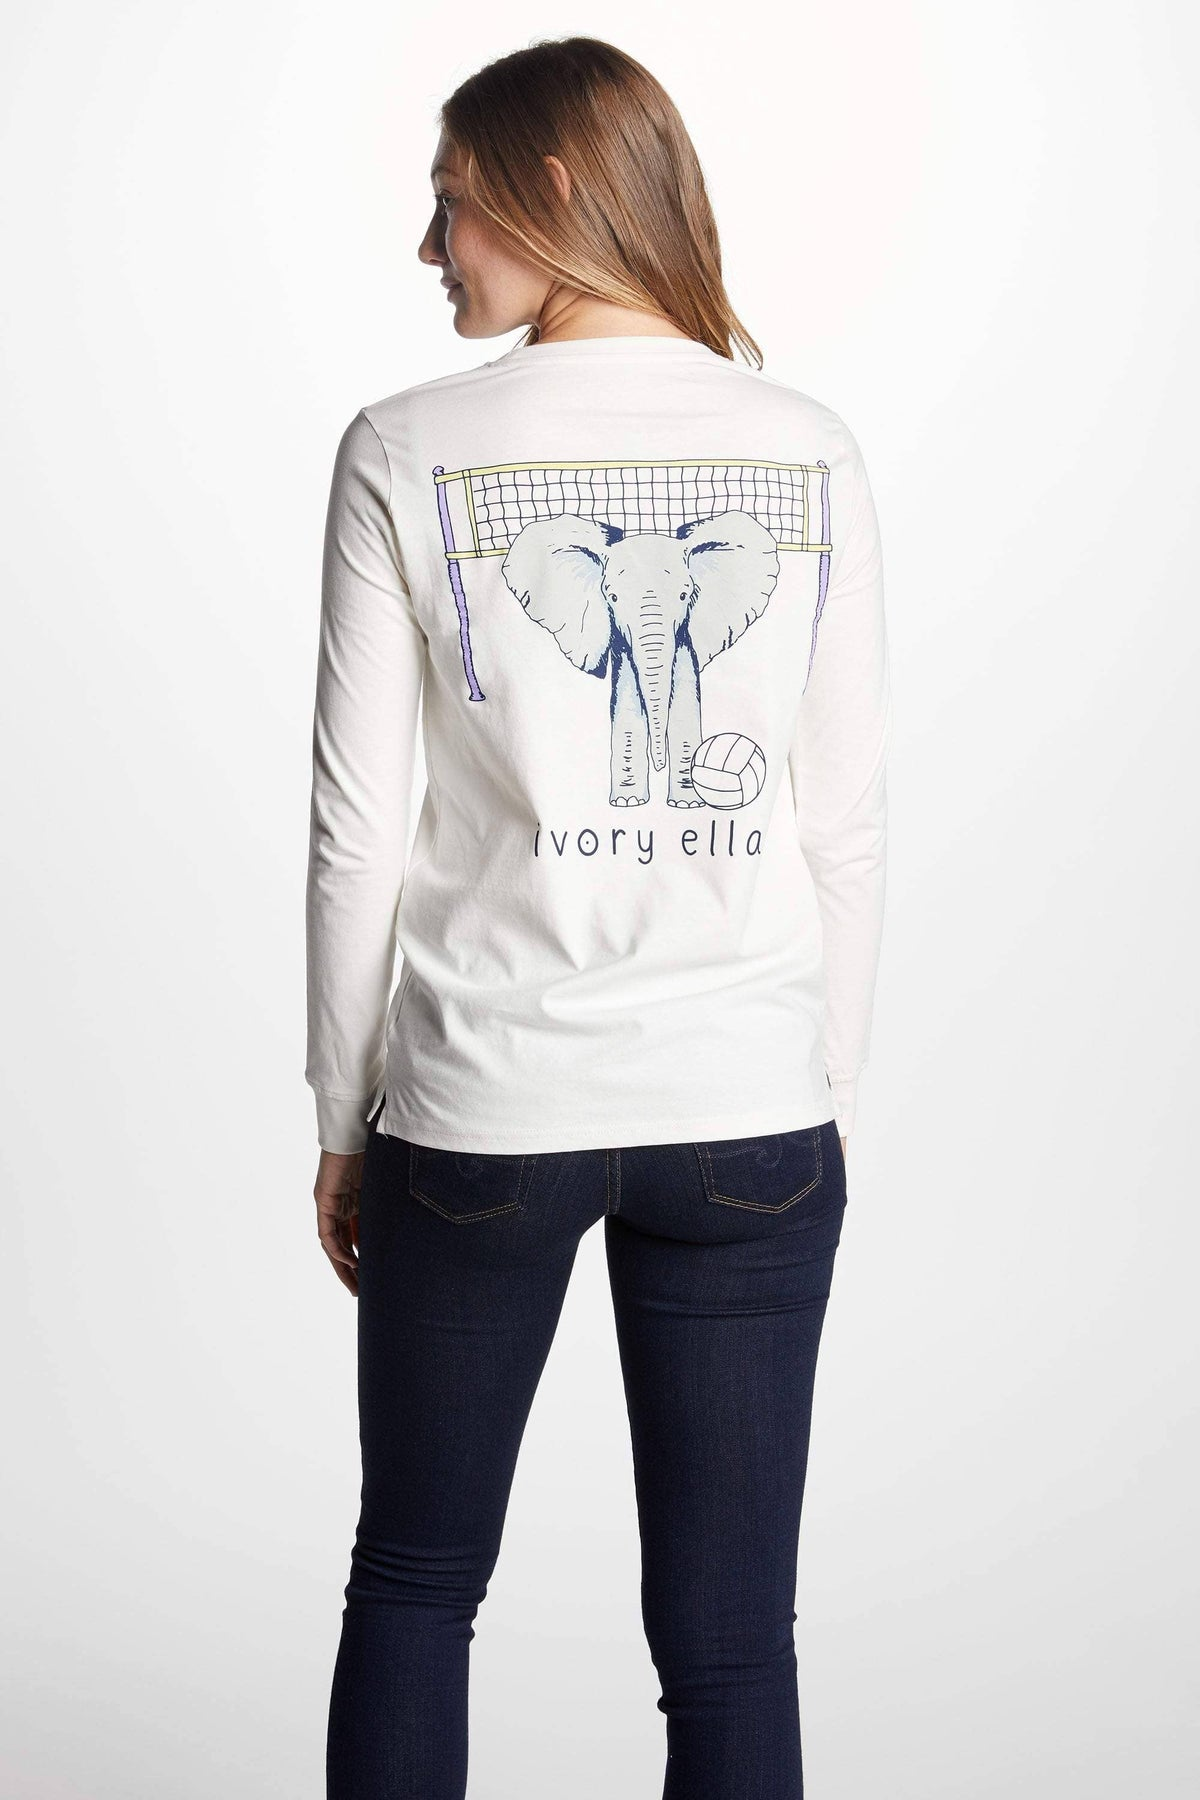 d8766b588ac Ivory Ella Women s Long Sleeve Shirts XXS Ella Fit New Volleyball Tee